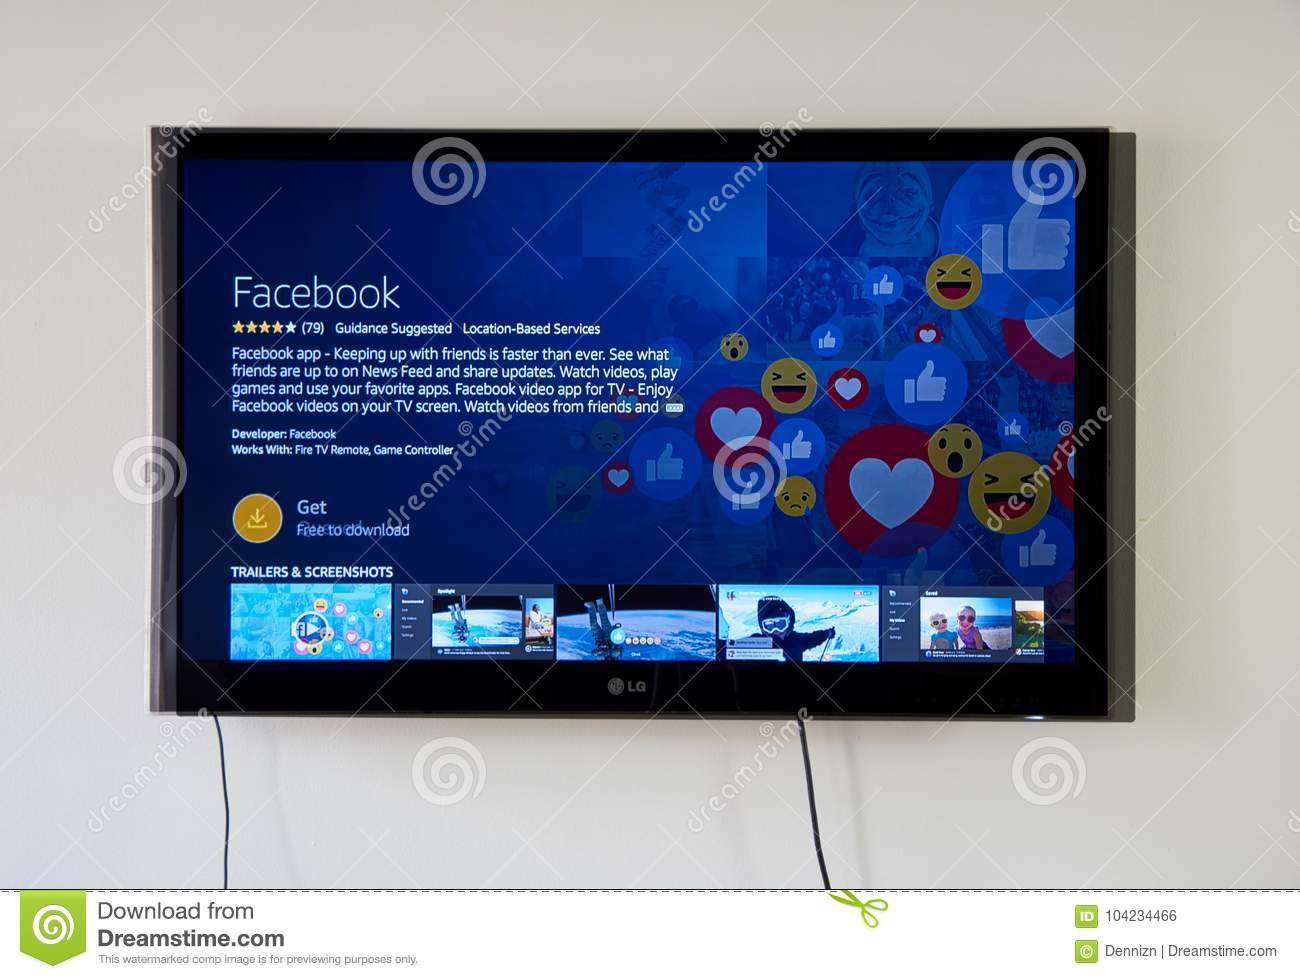 Facebook App And Login Page On LG TV Editorial Photo - Image of